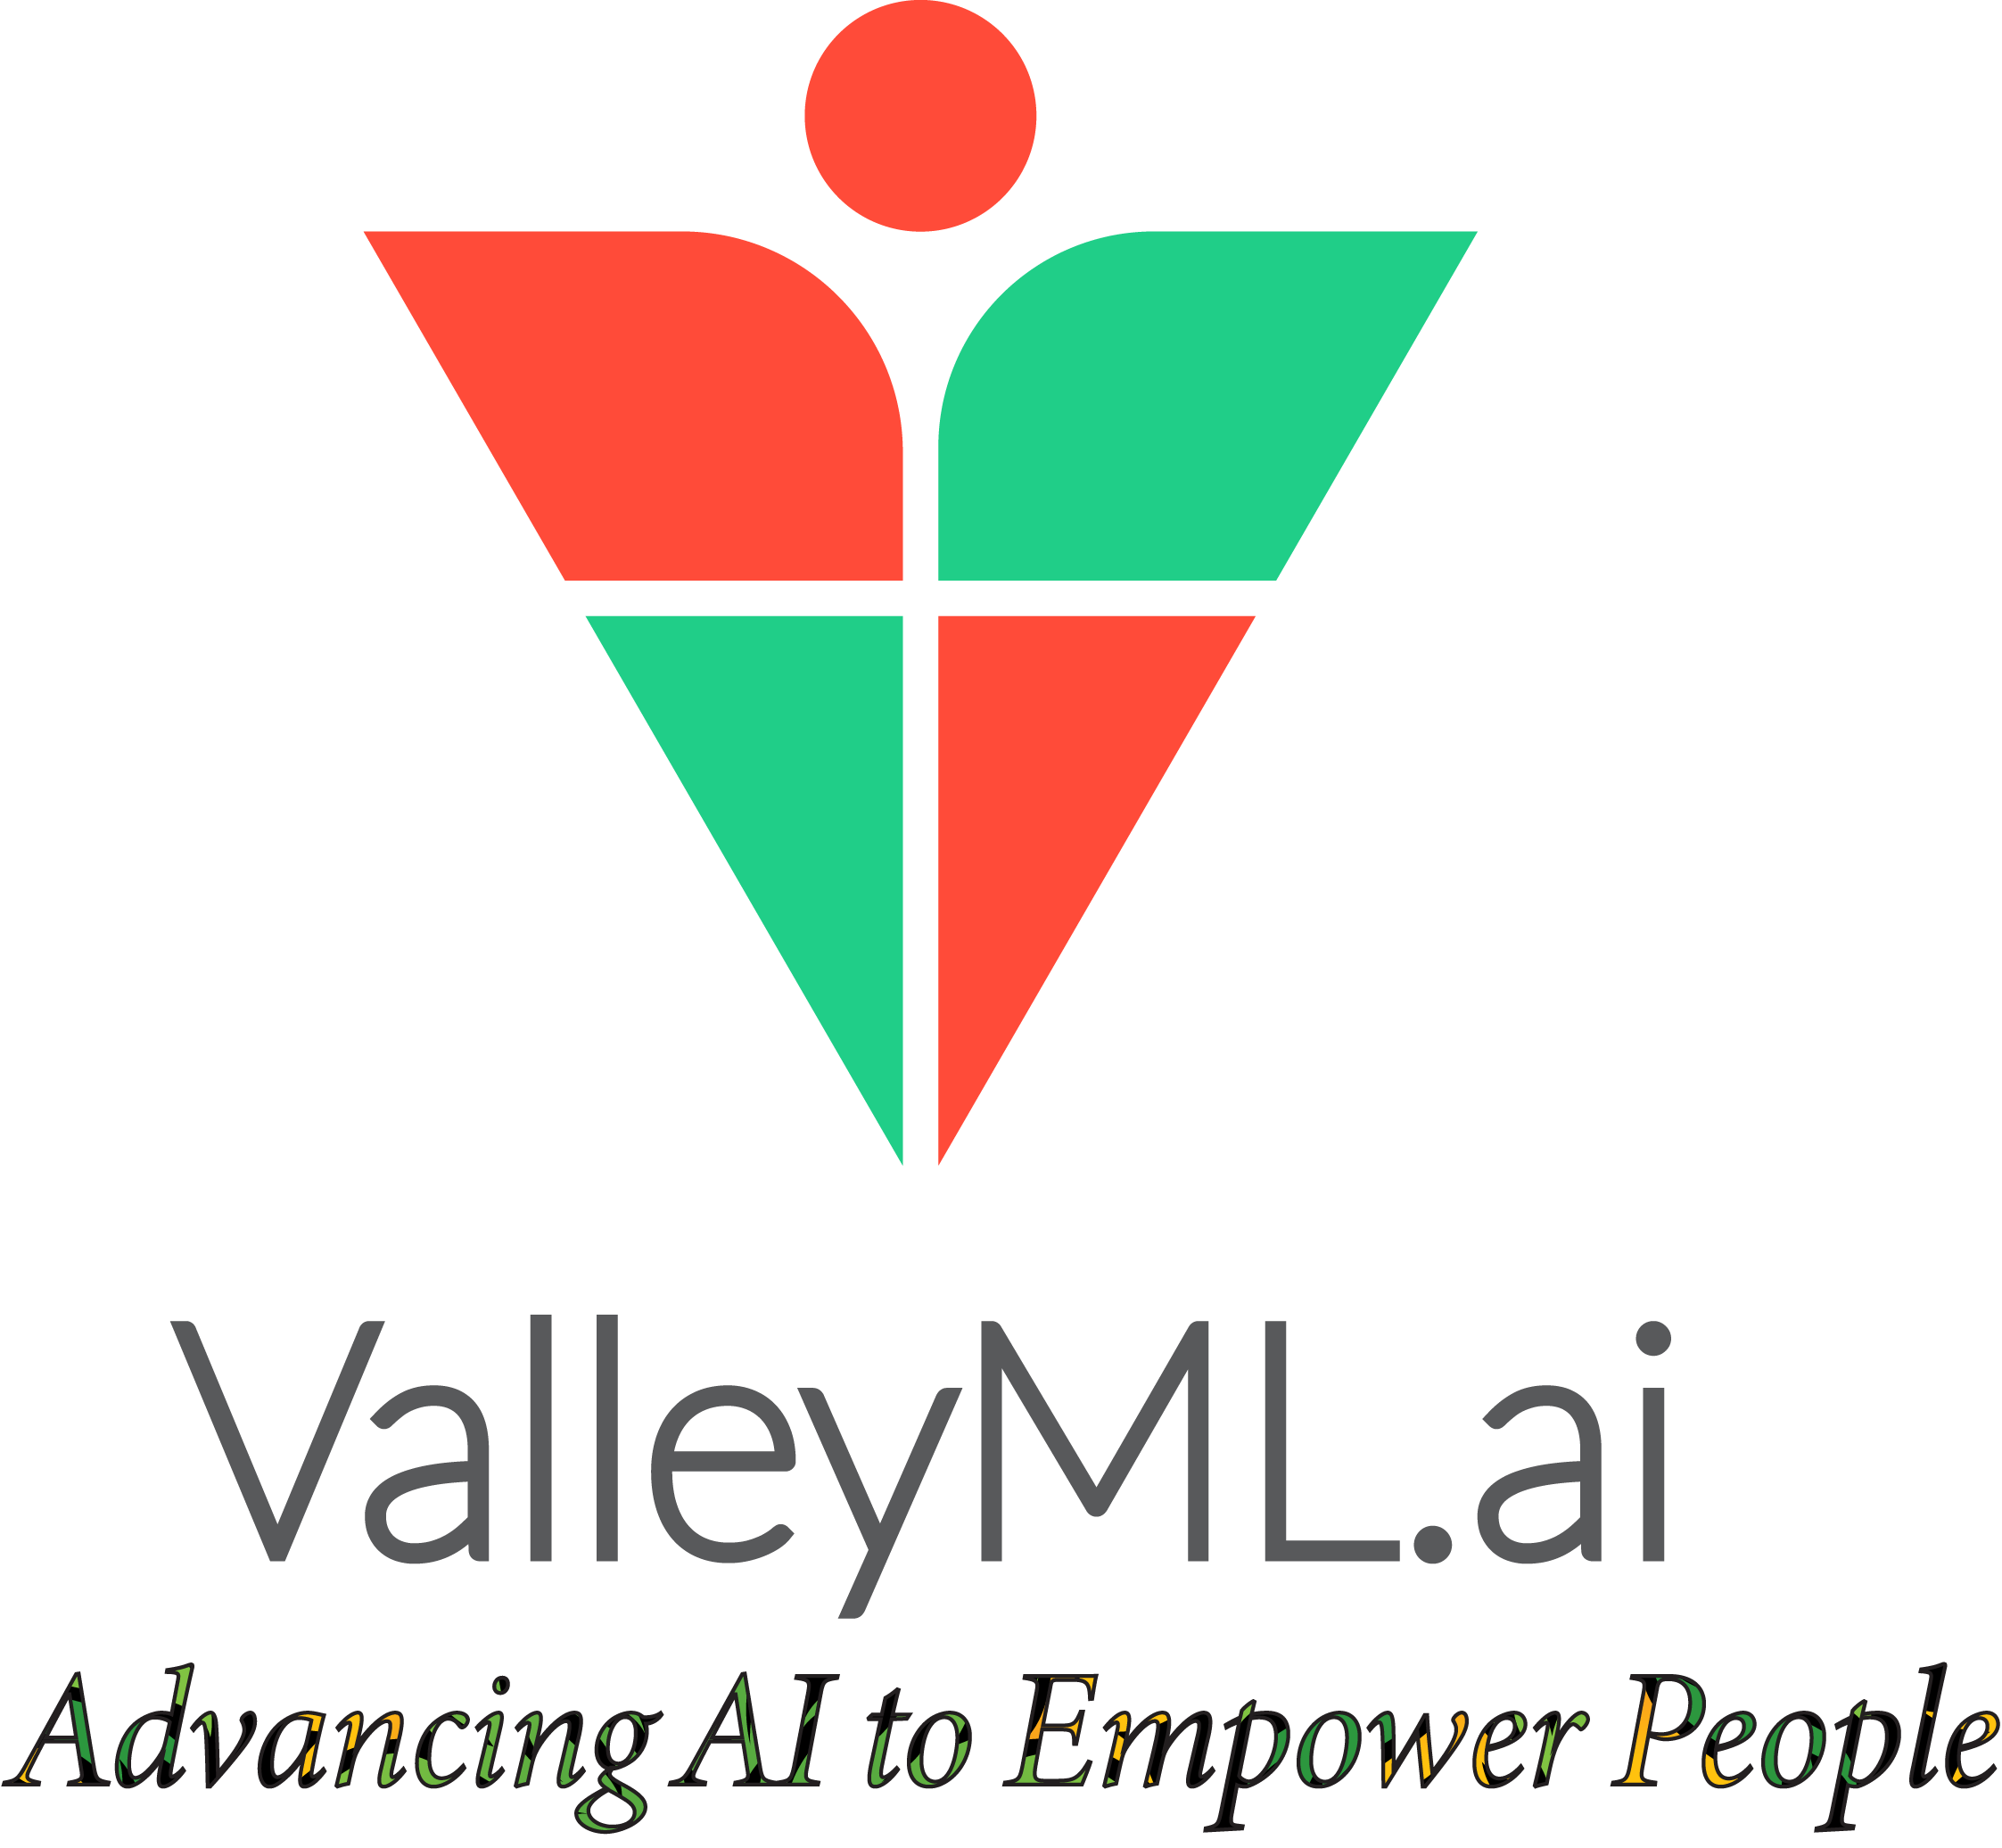 ValleyML.ai